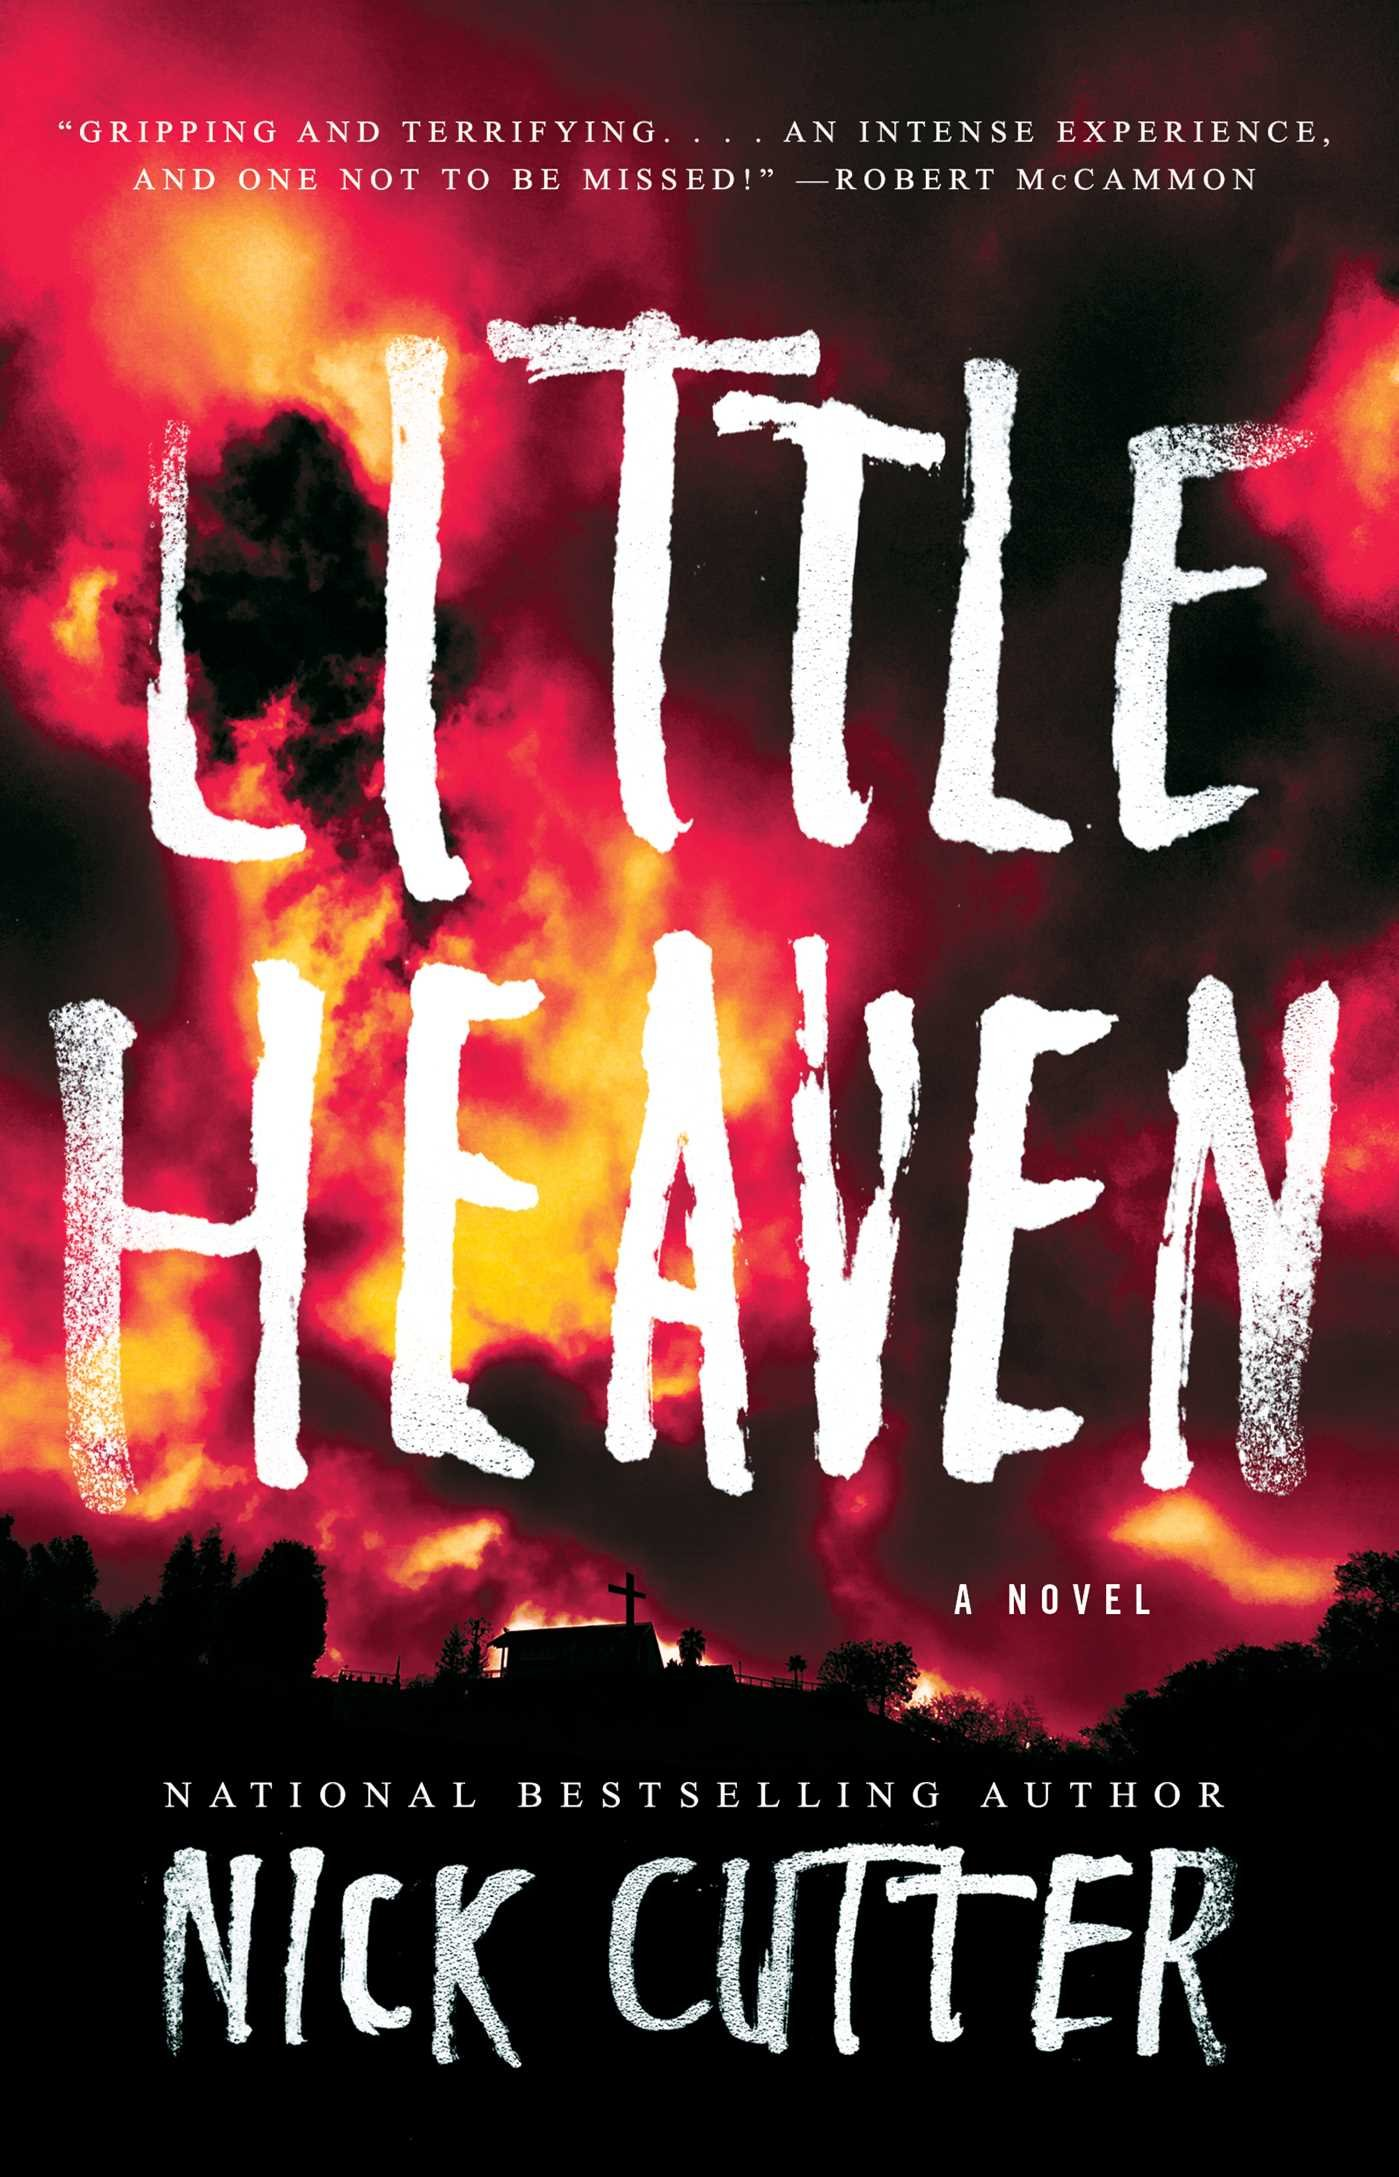 Amazon.com: Little Heaven: A Novel (9781501104237): Cutter, Nick ...